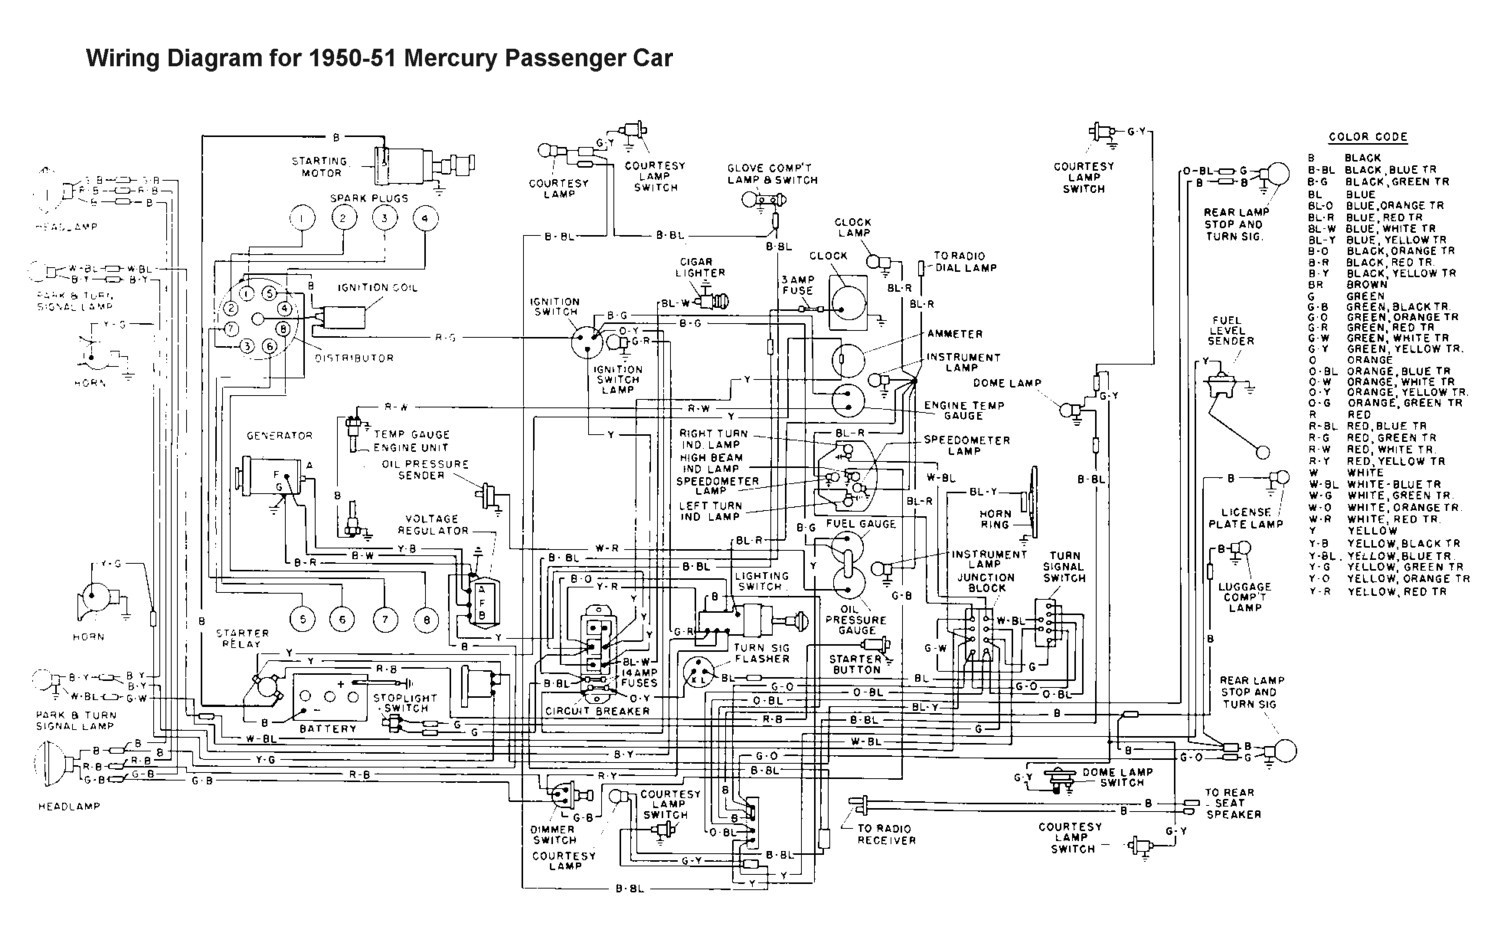 Flathead Electrical Wiring Diagrams Volkswagen 6 Volt Generator Diagram For 1950 51 Mercury Car